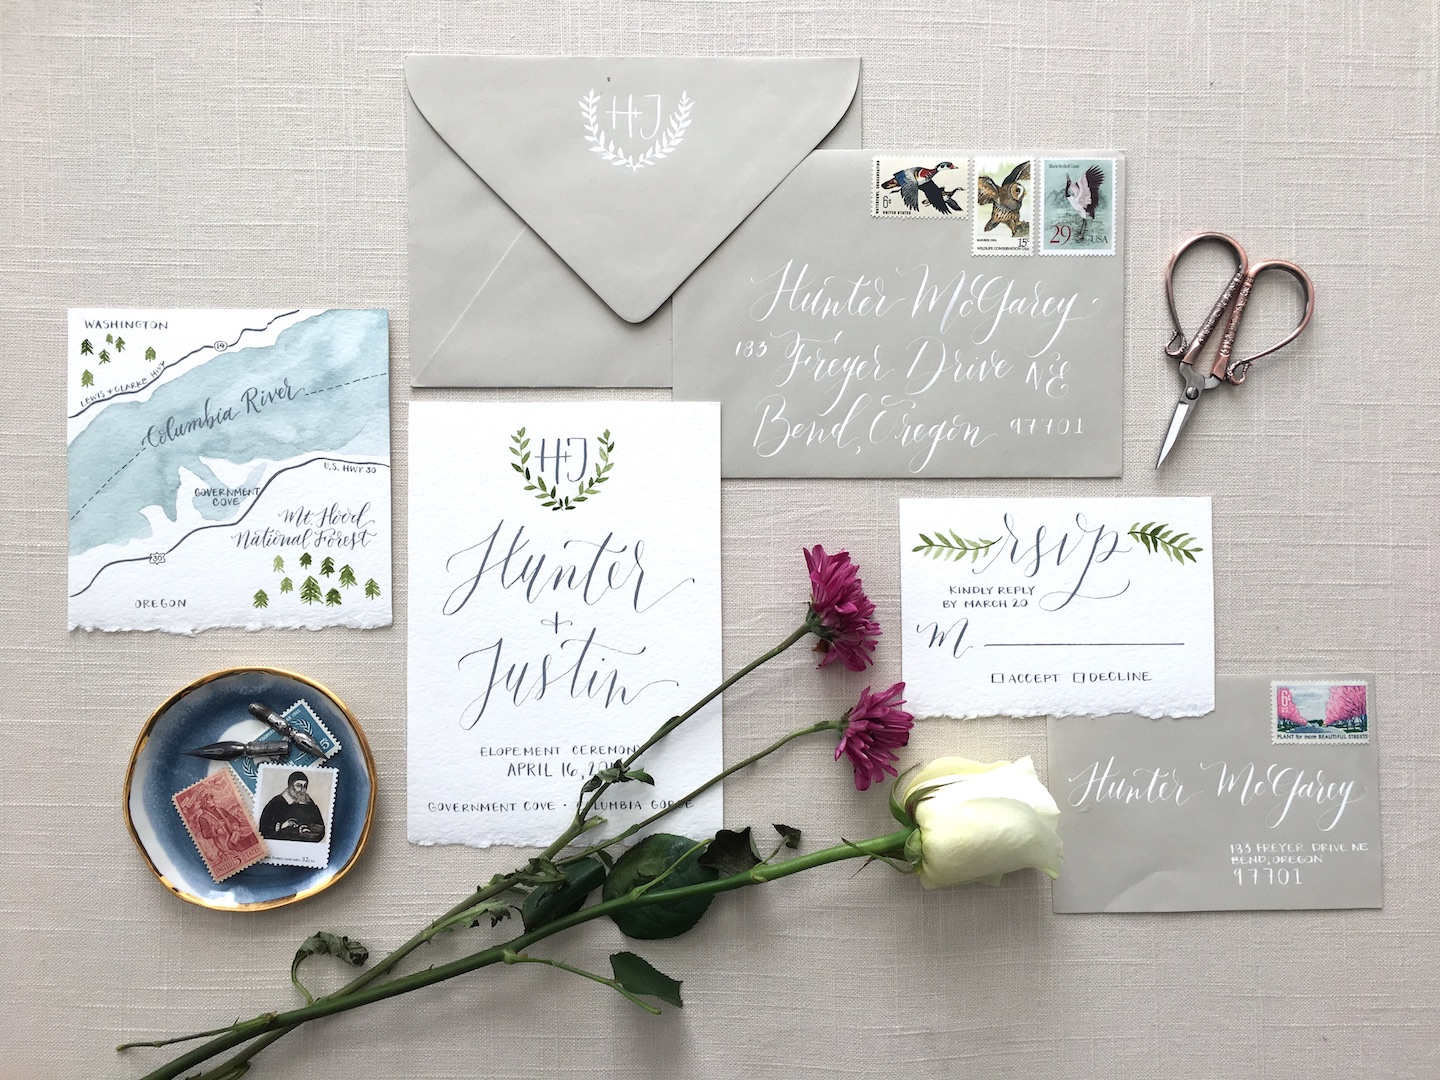 This is the finished product of my styling board with stationery elements placed on top of it! Due to the lighting in this photo, the board photographed more of a gray than a beige - but the neutral background still worked perfectly for what I was trying to accomplish!